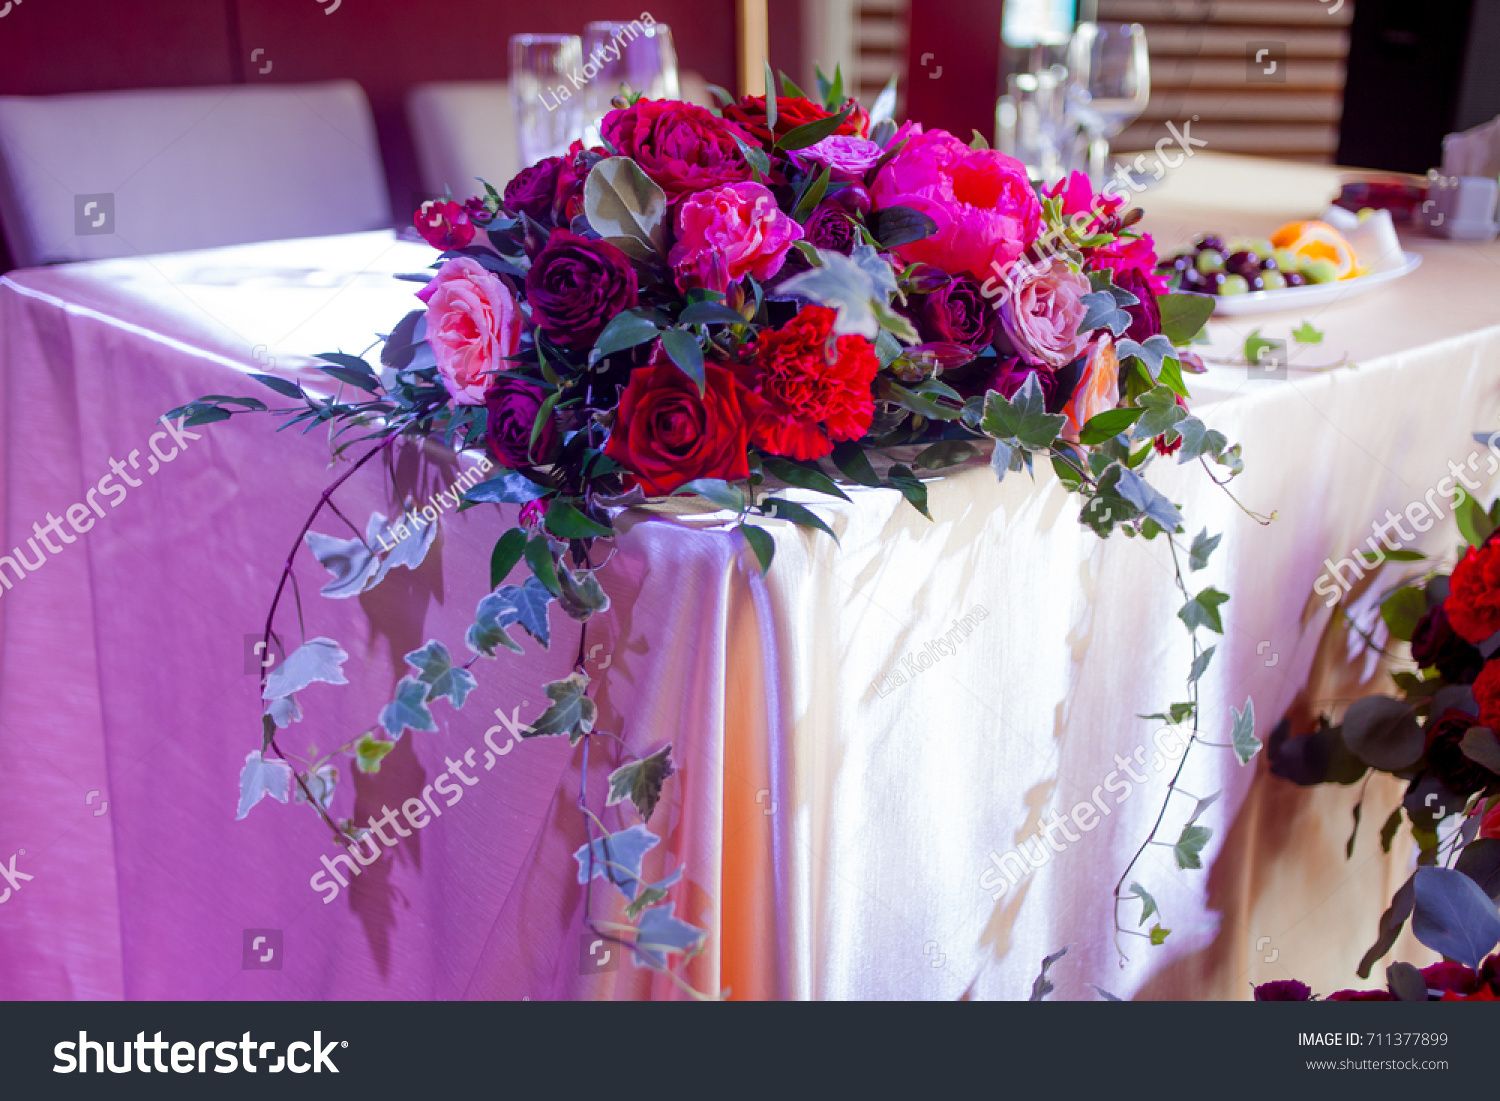 Wedding Decor Red Flowers Restaurant Table Stock Photo (Edit Now ...